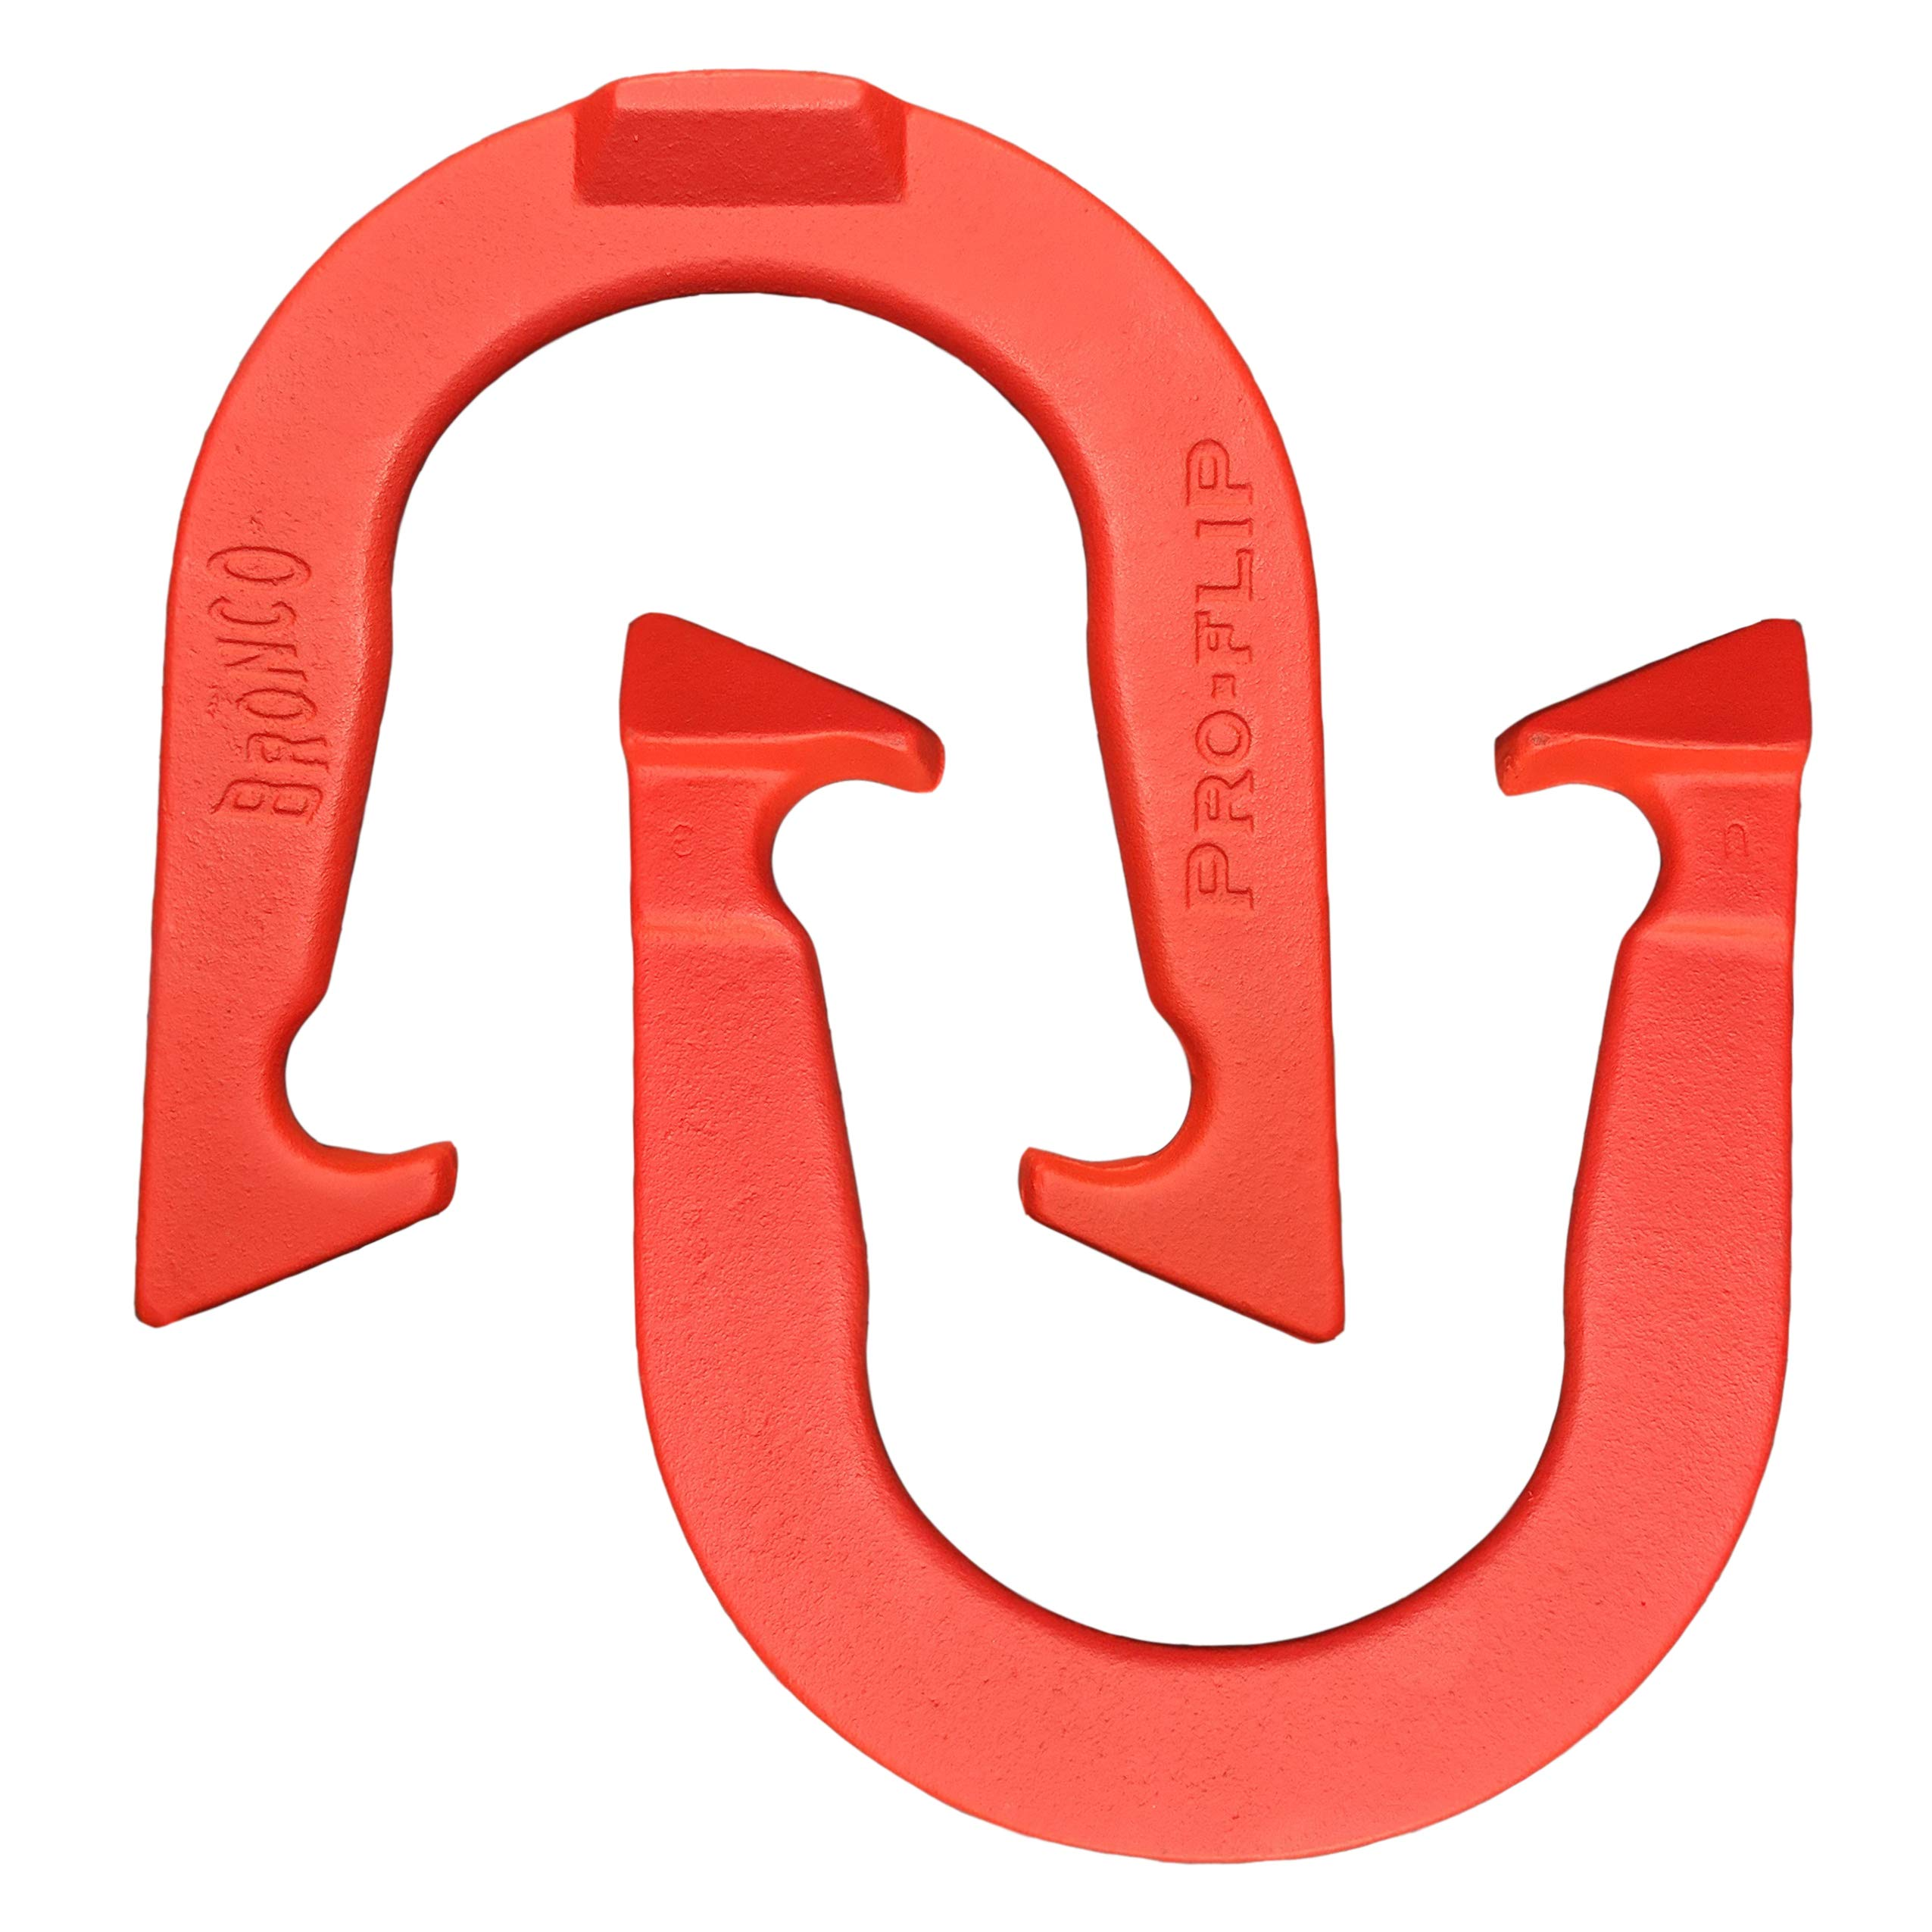 Bronco Pro-Flip Professional Pitching Horseshoes- Made in USA (Red- Single Pair (2 Shoes)) by Thoroughbred Horseshoes